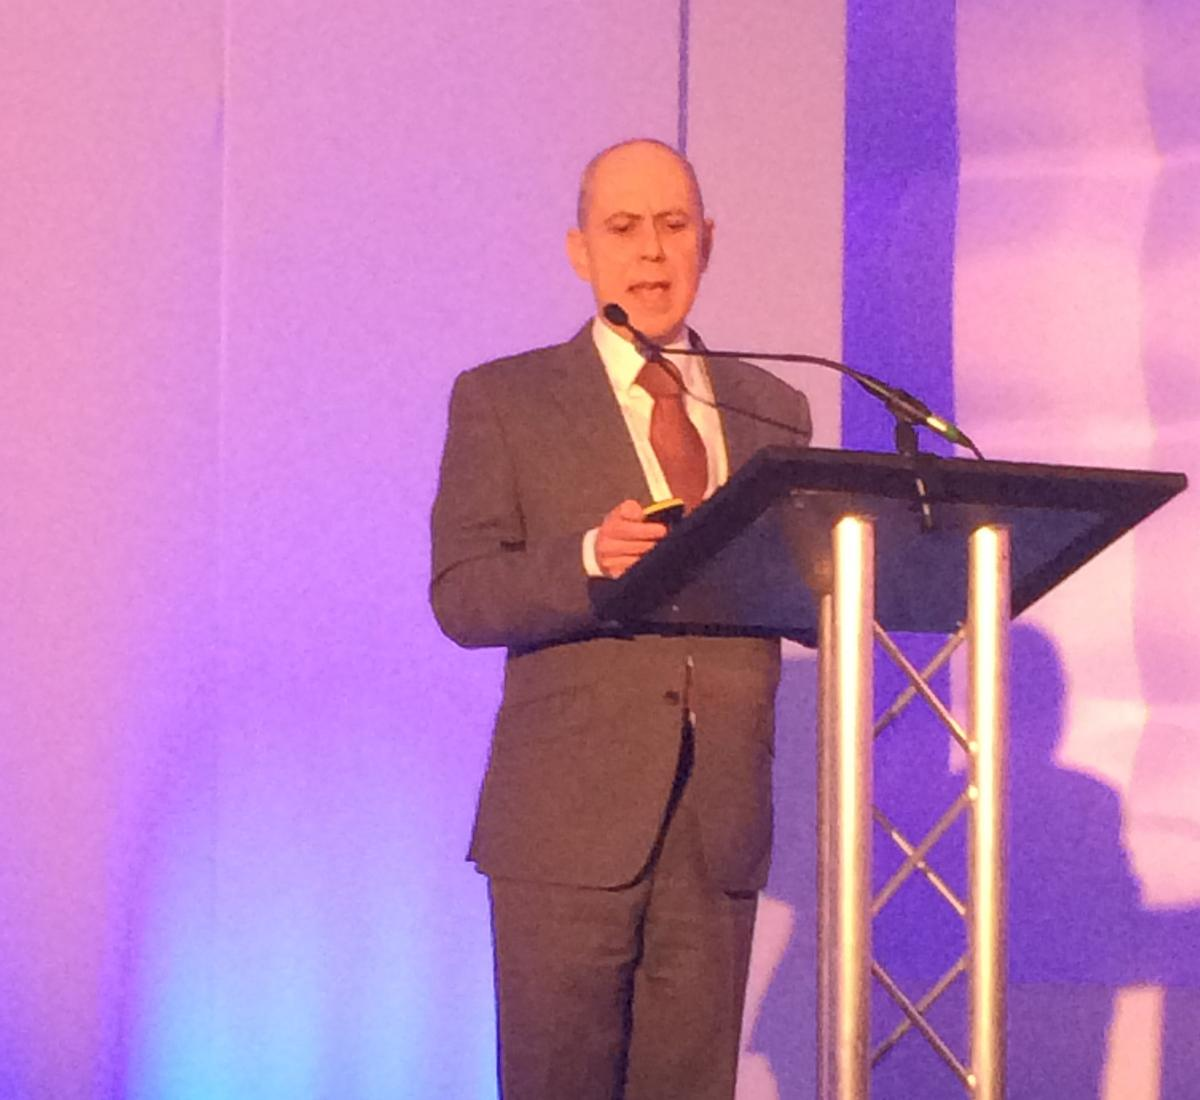 Mike Wallace spoke at the World Spa & Wellness Convention in London on Sunday